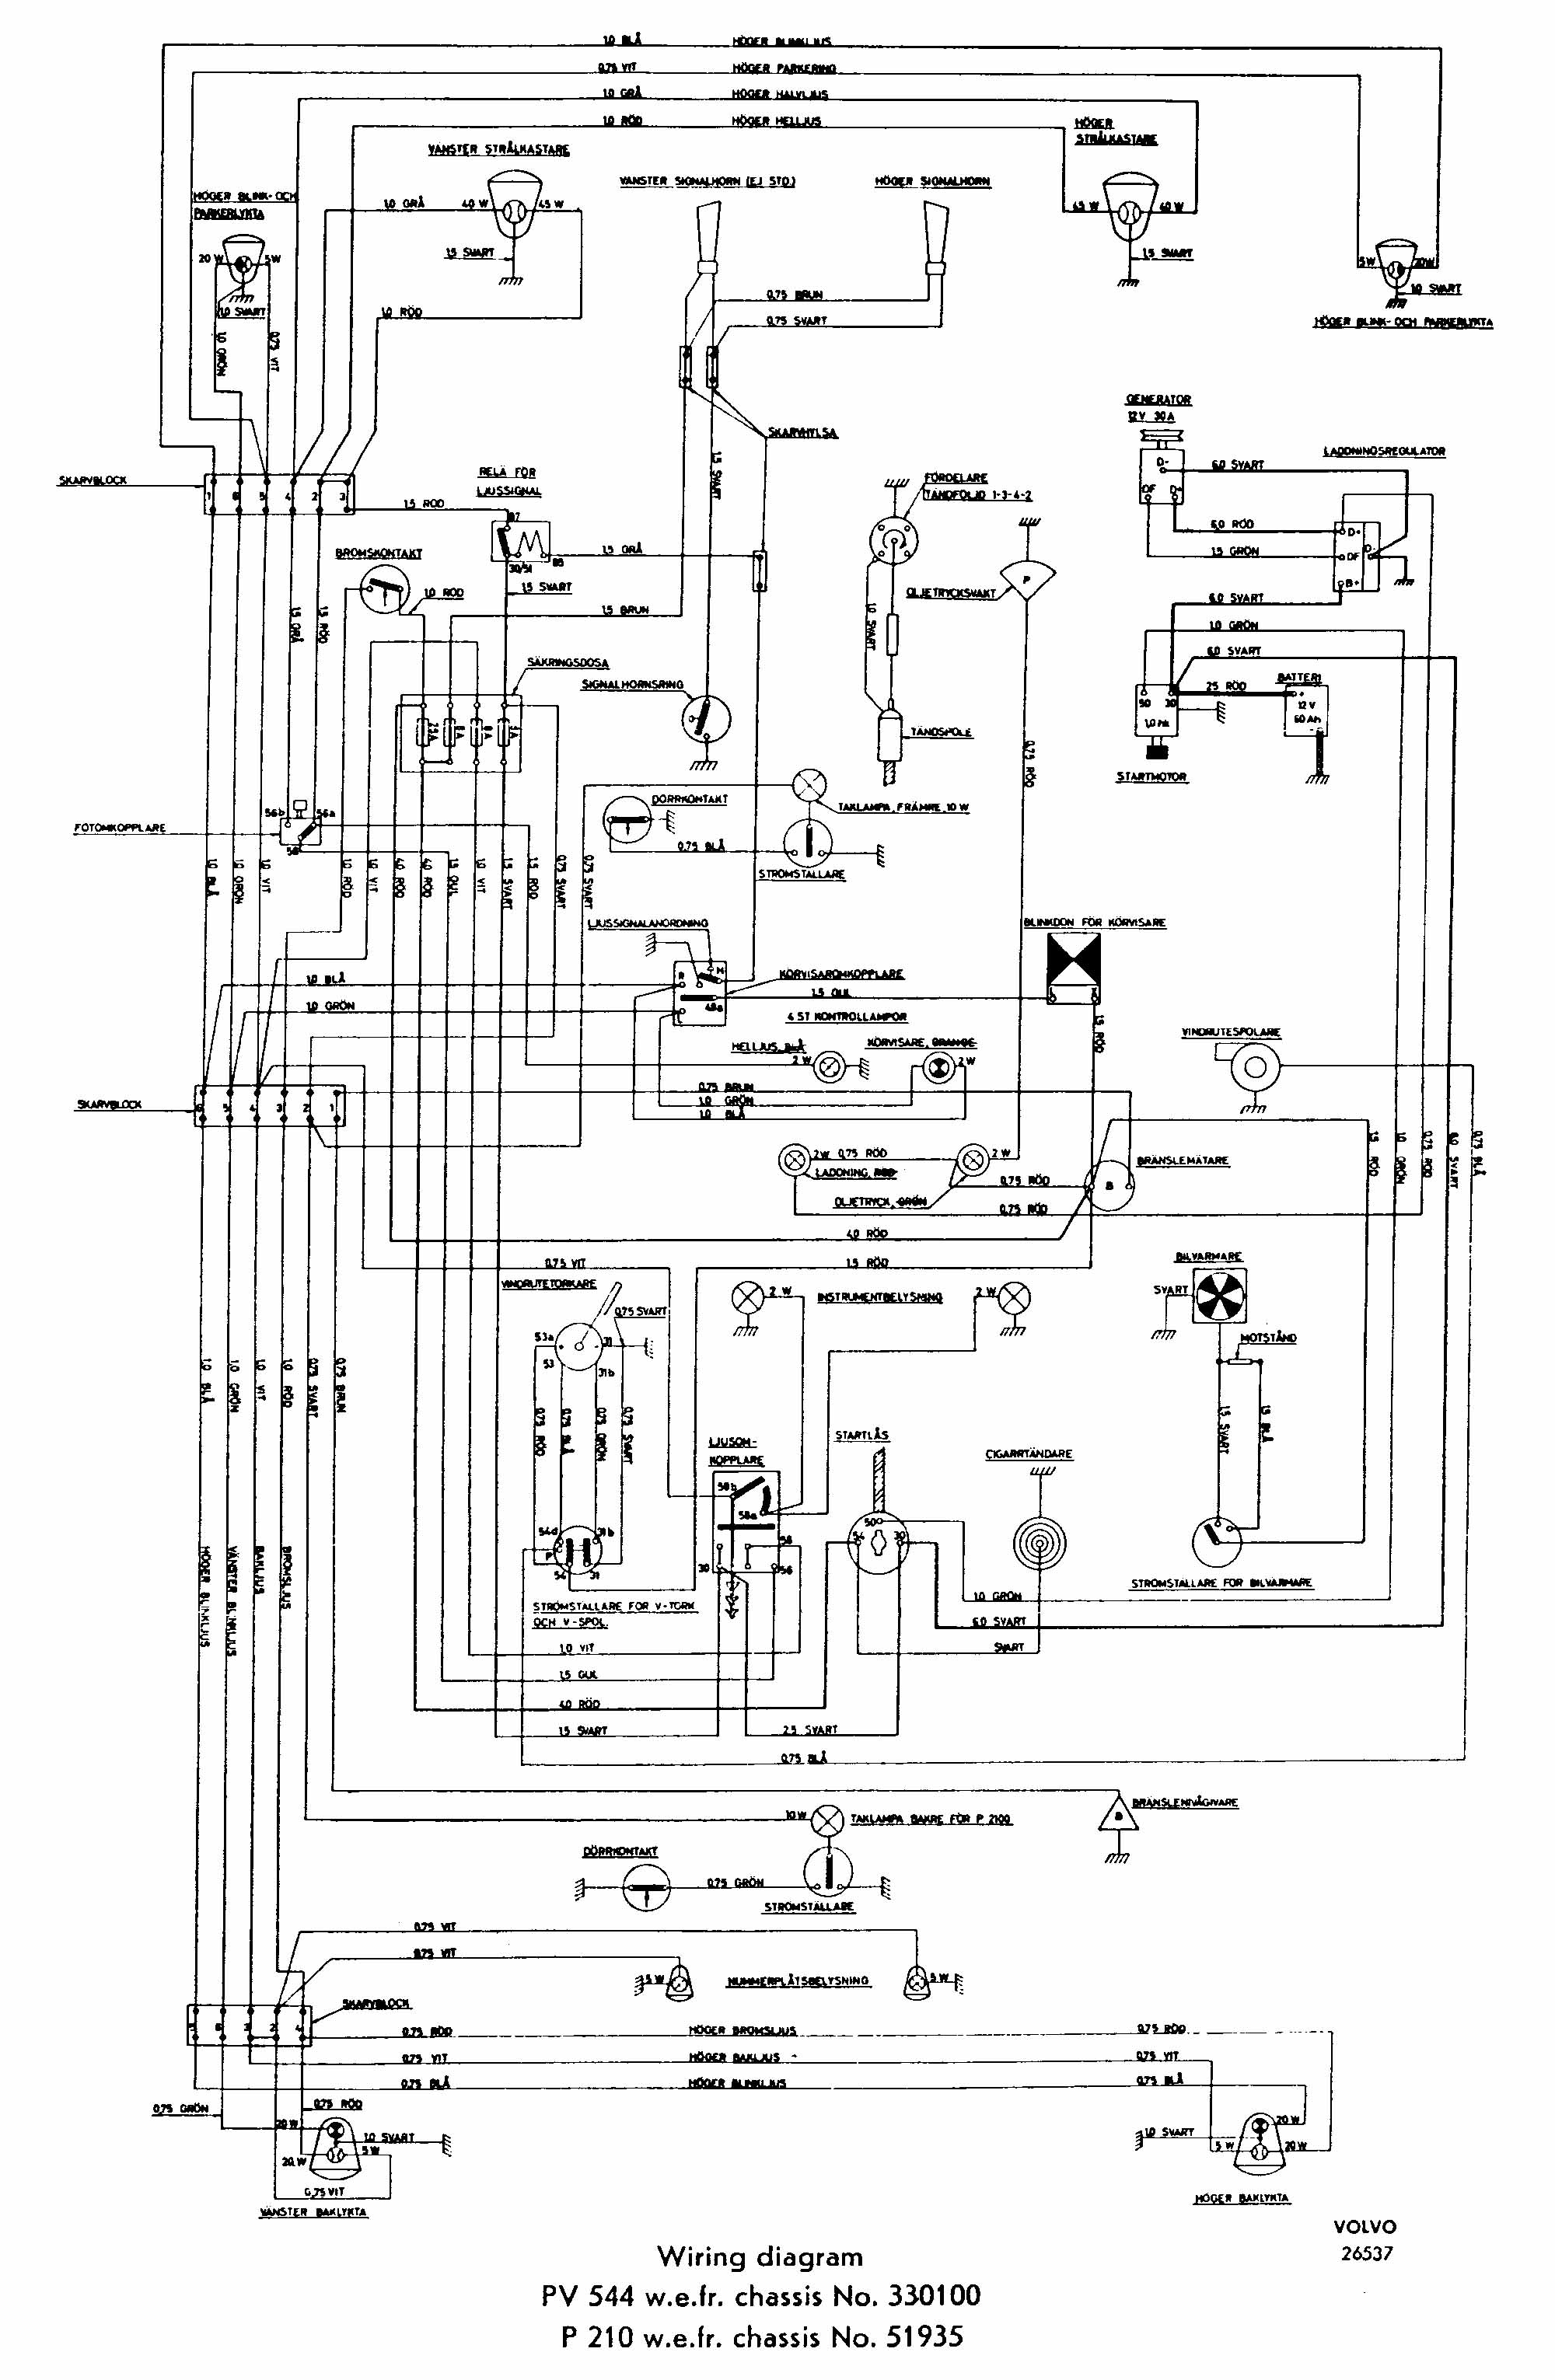 hight resolution of ford 9000 vnr wiring diagram wiring diagrams source ford escape wiring diagram nav system bluetooth page 2 greenhybrid